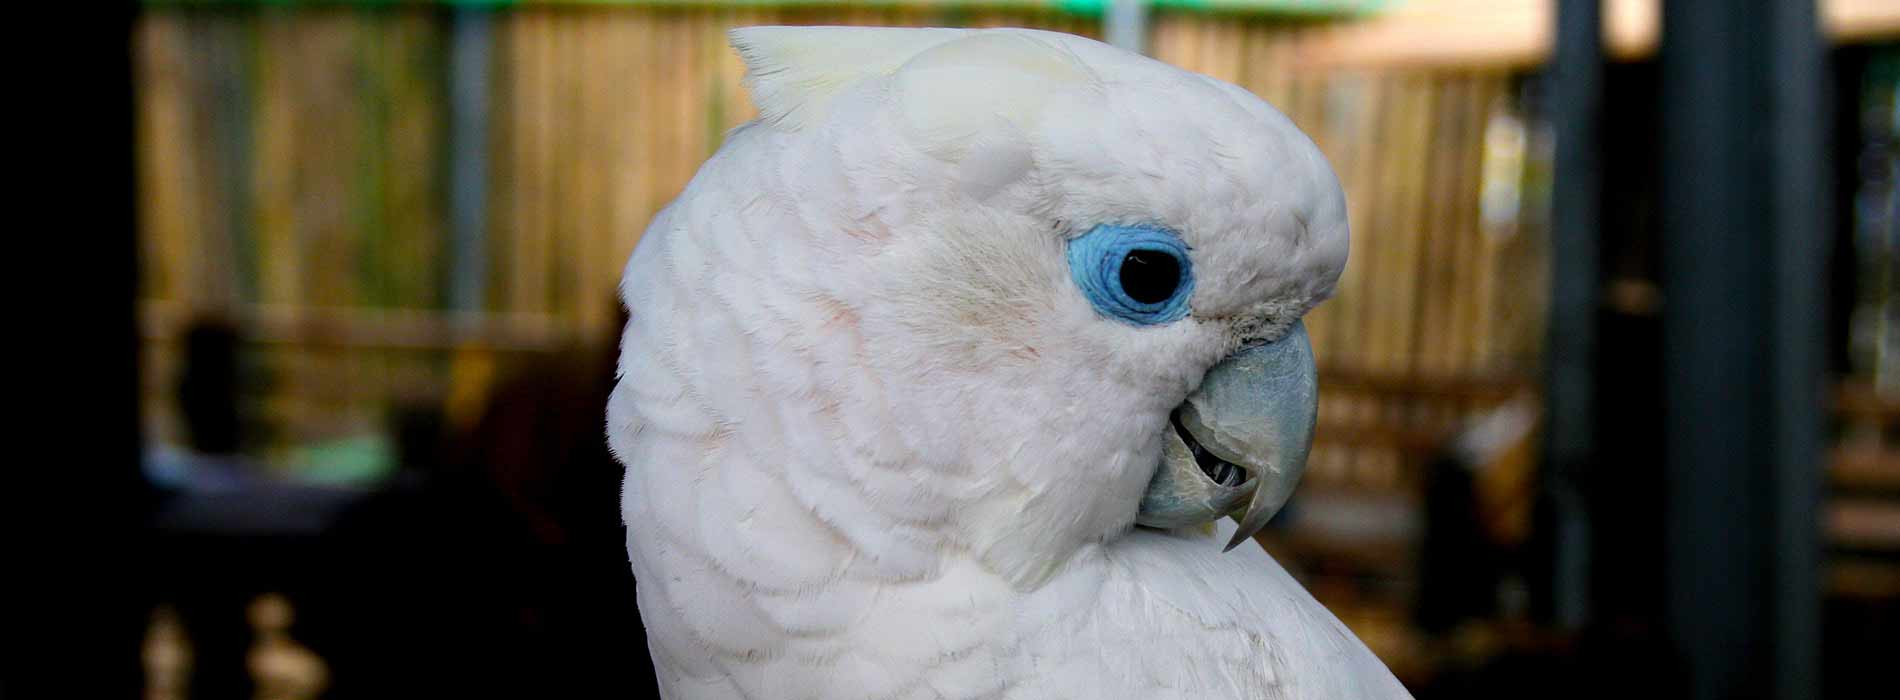 Ducorp's cockatoo